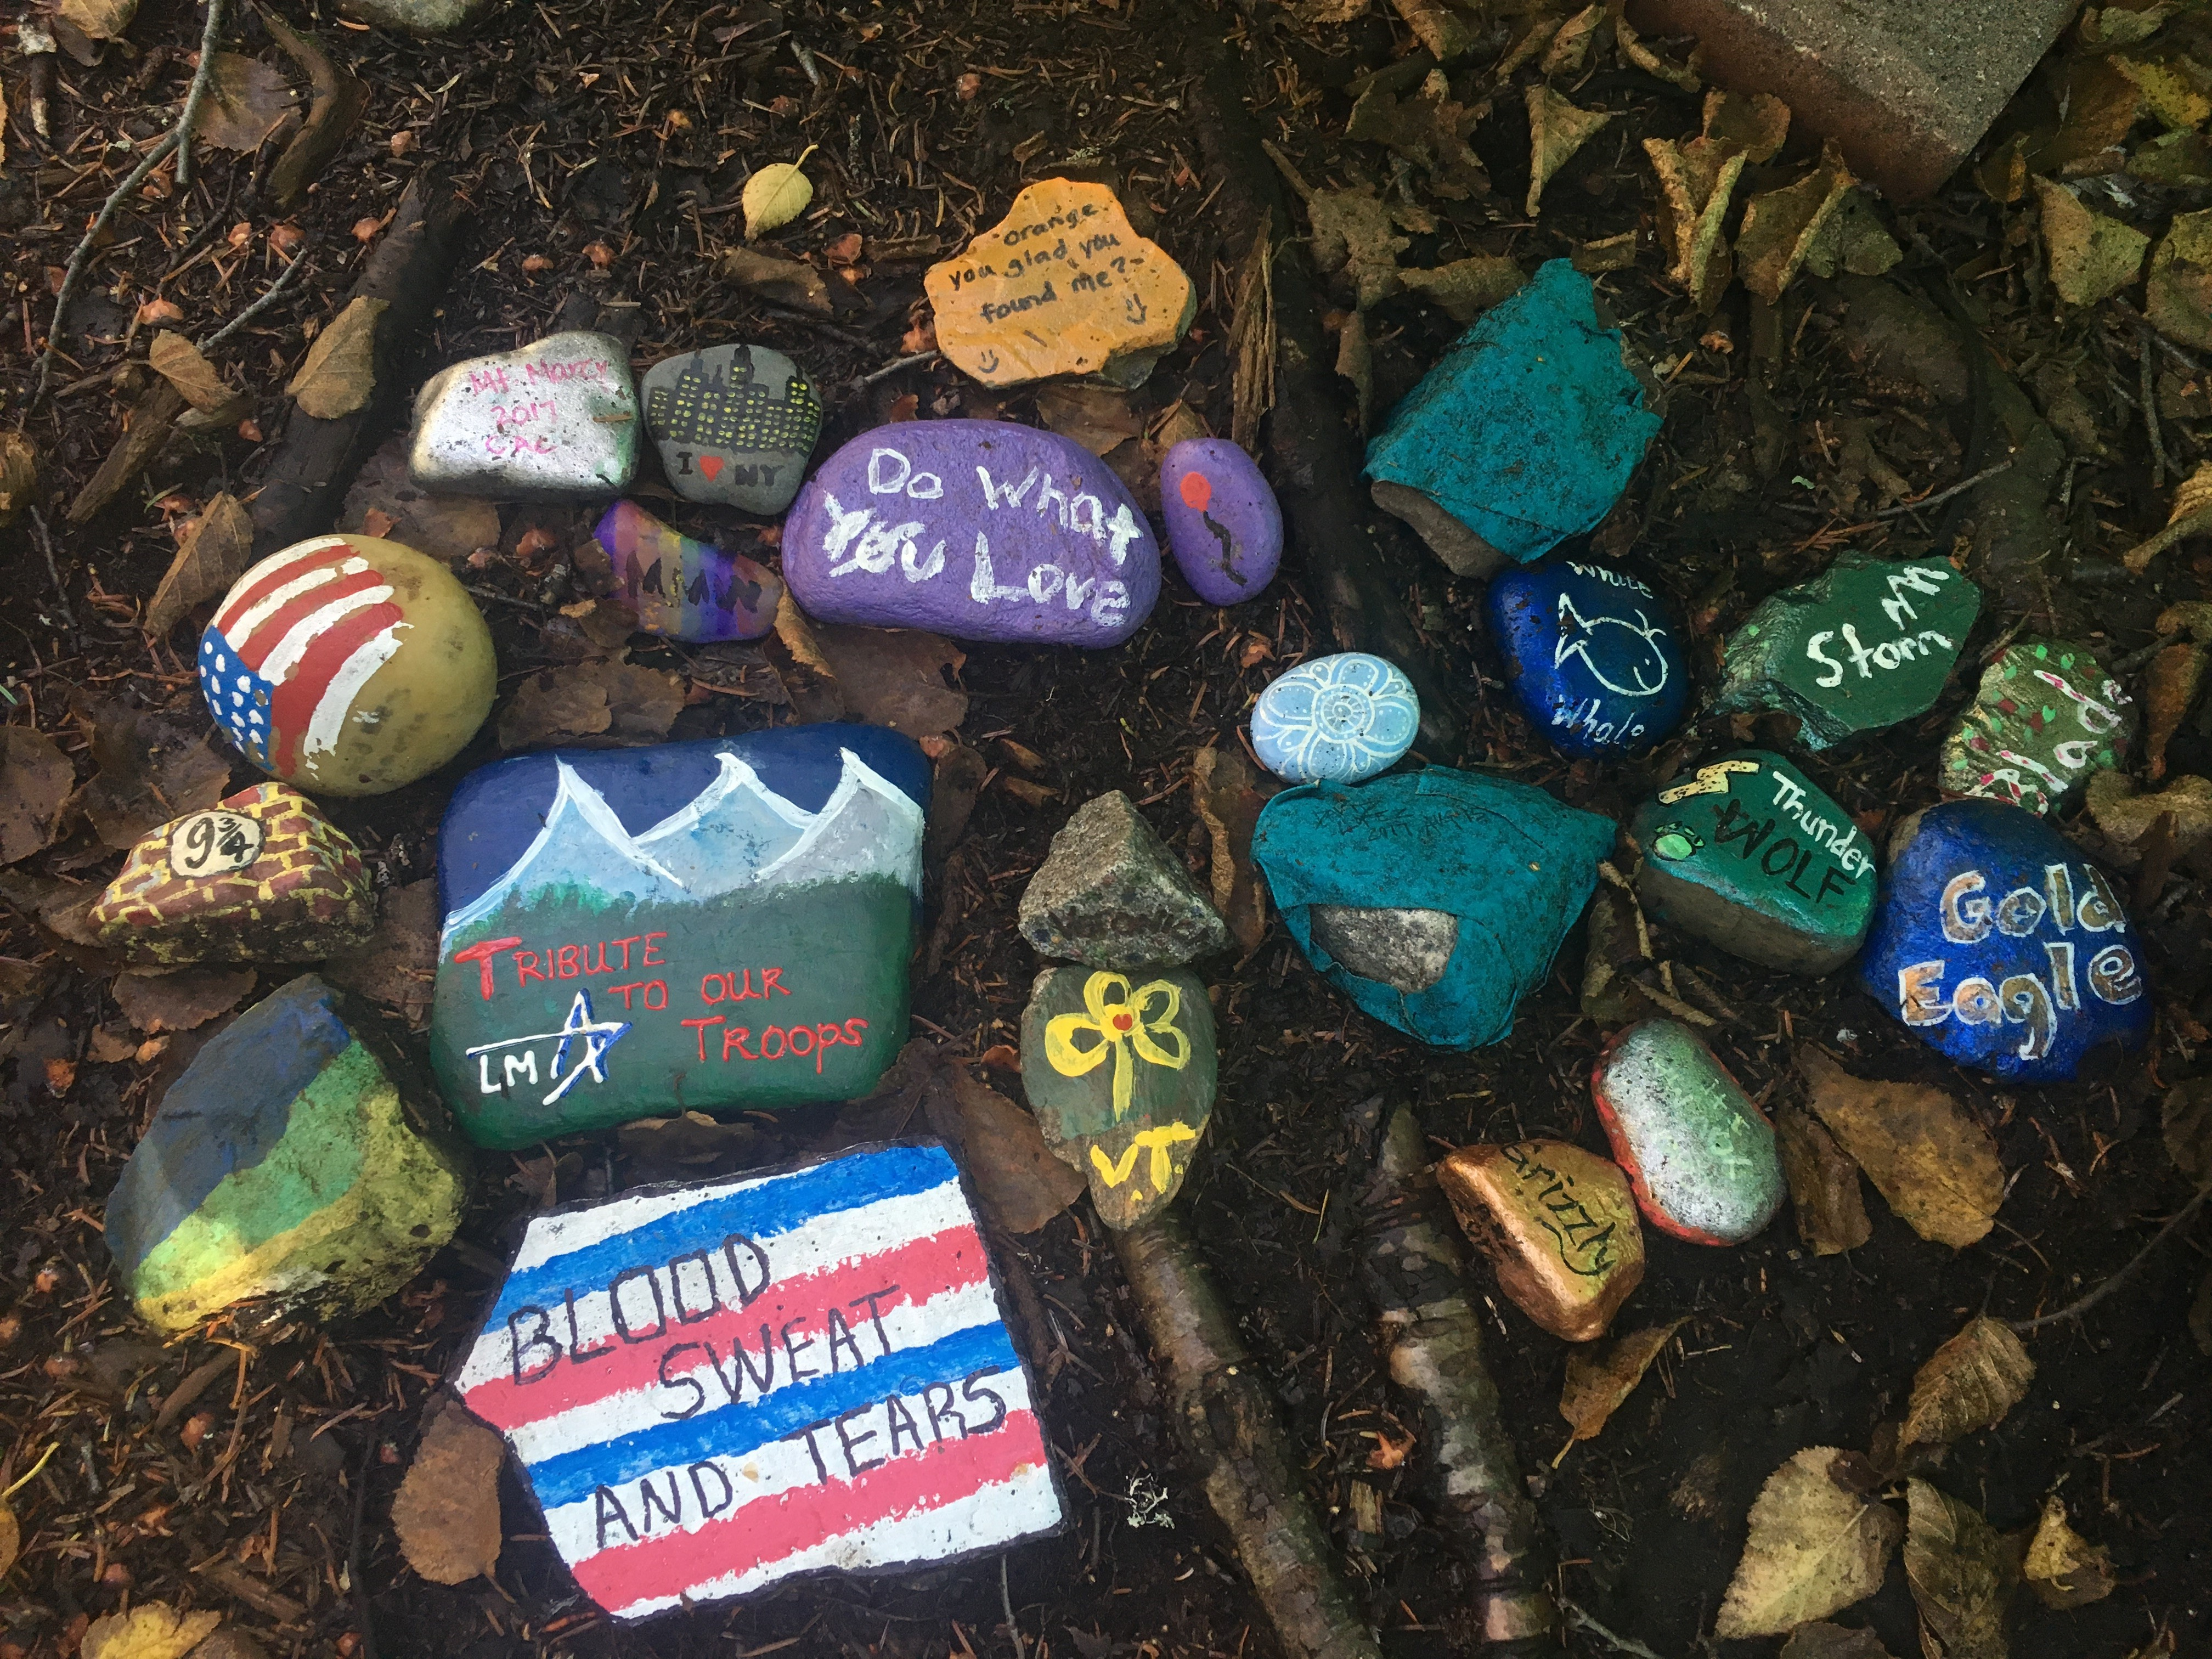 A collection of bightly painted kindness rocks